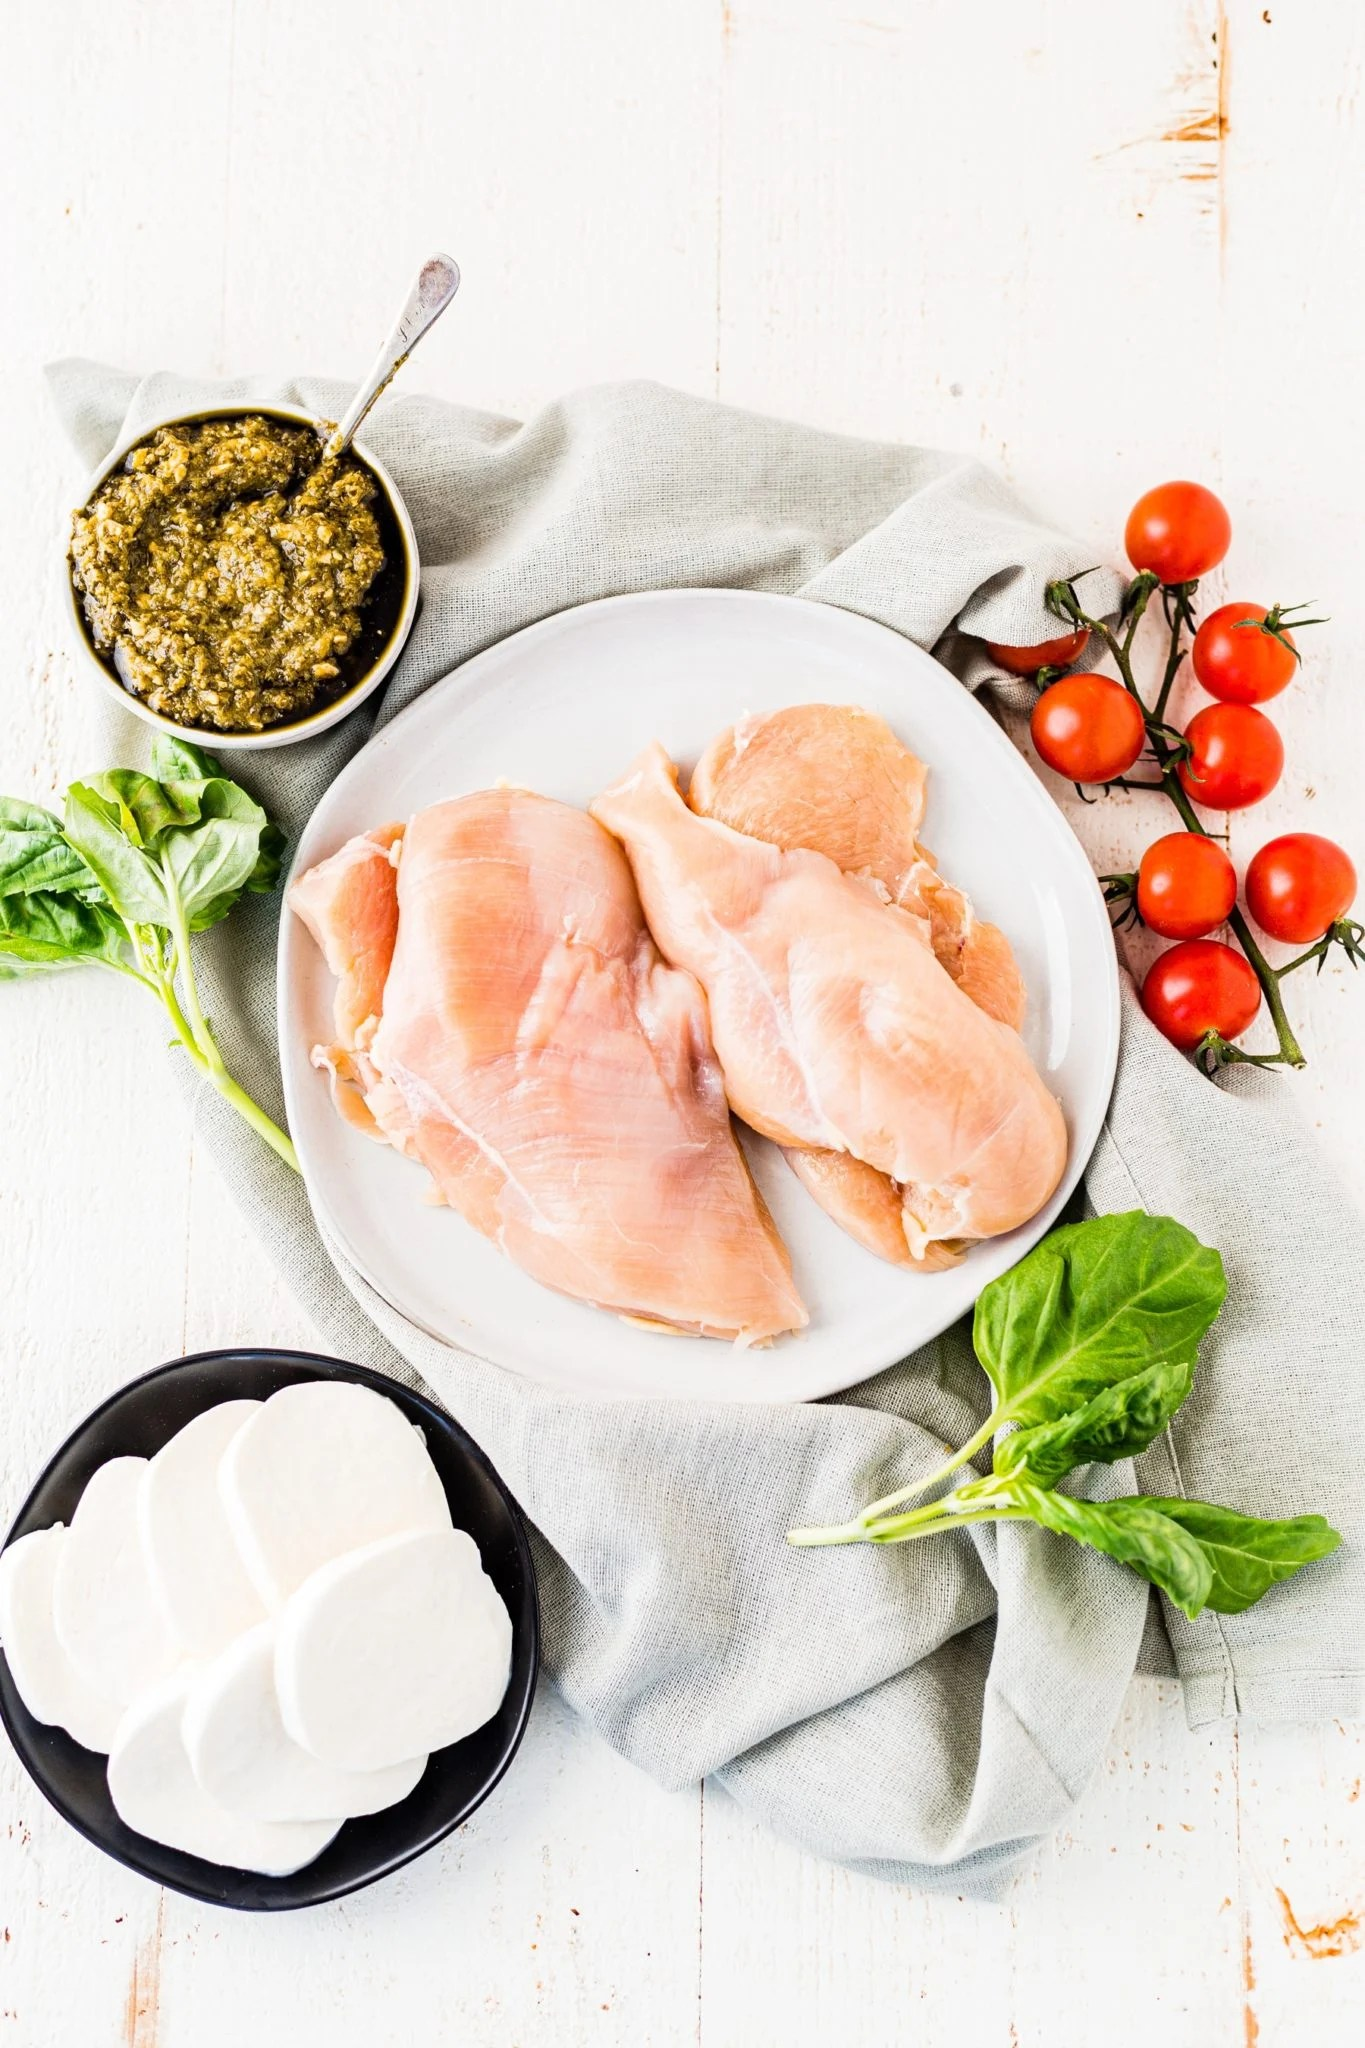 chicken breast, fresh mozzarella and basil pesto on a table before being cooked